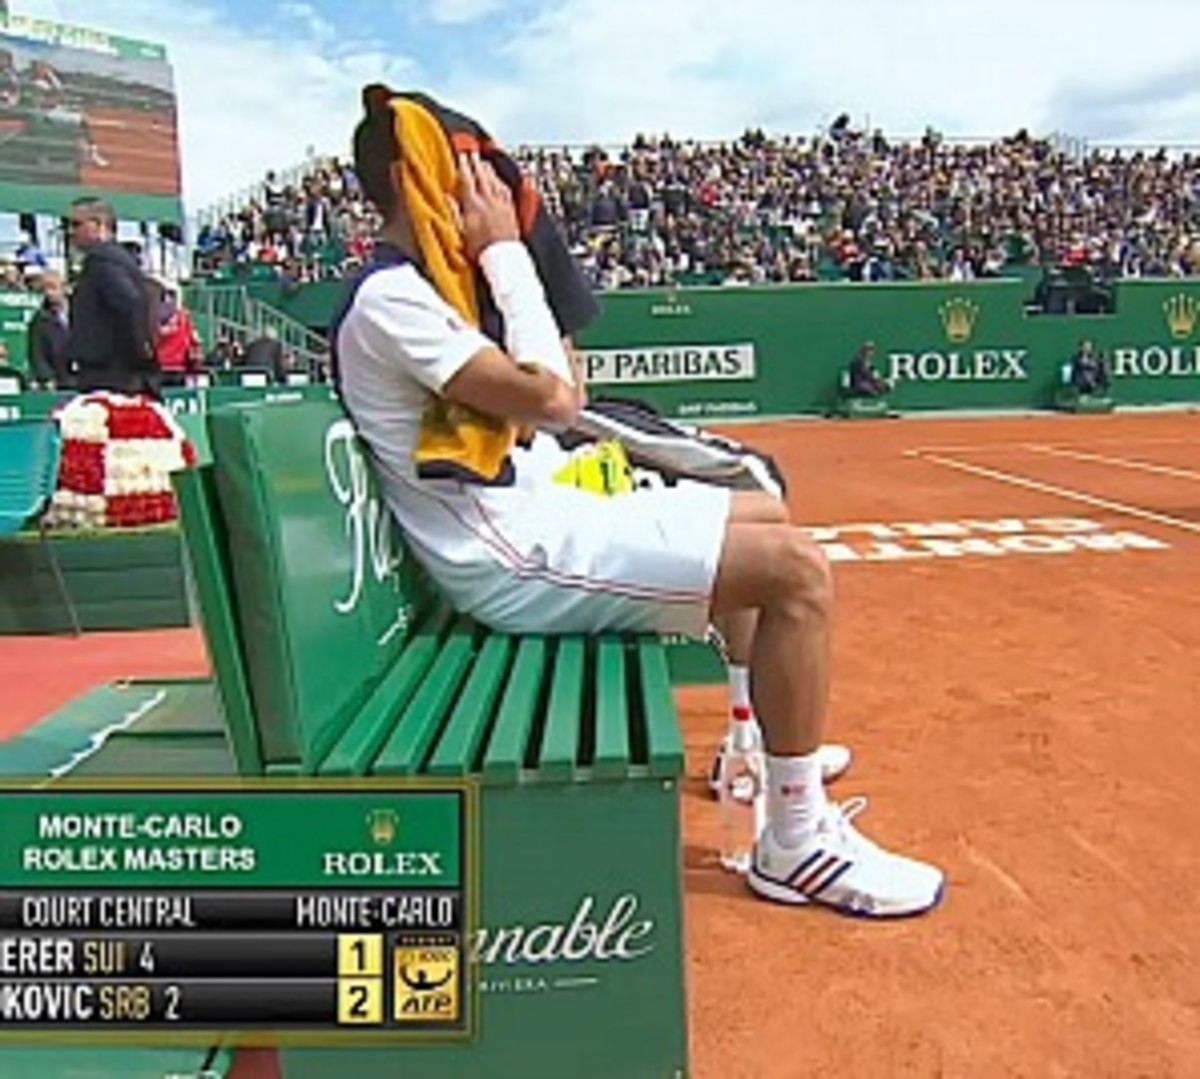 Novak Djokovic's heavy tape job hasn't hindered him so far. (Screengrab from TennisTV)